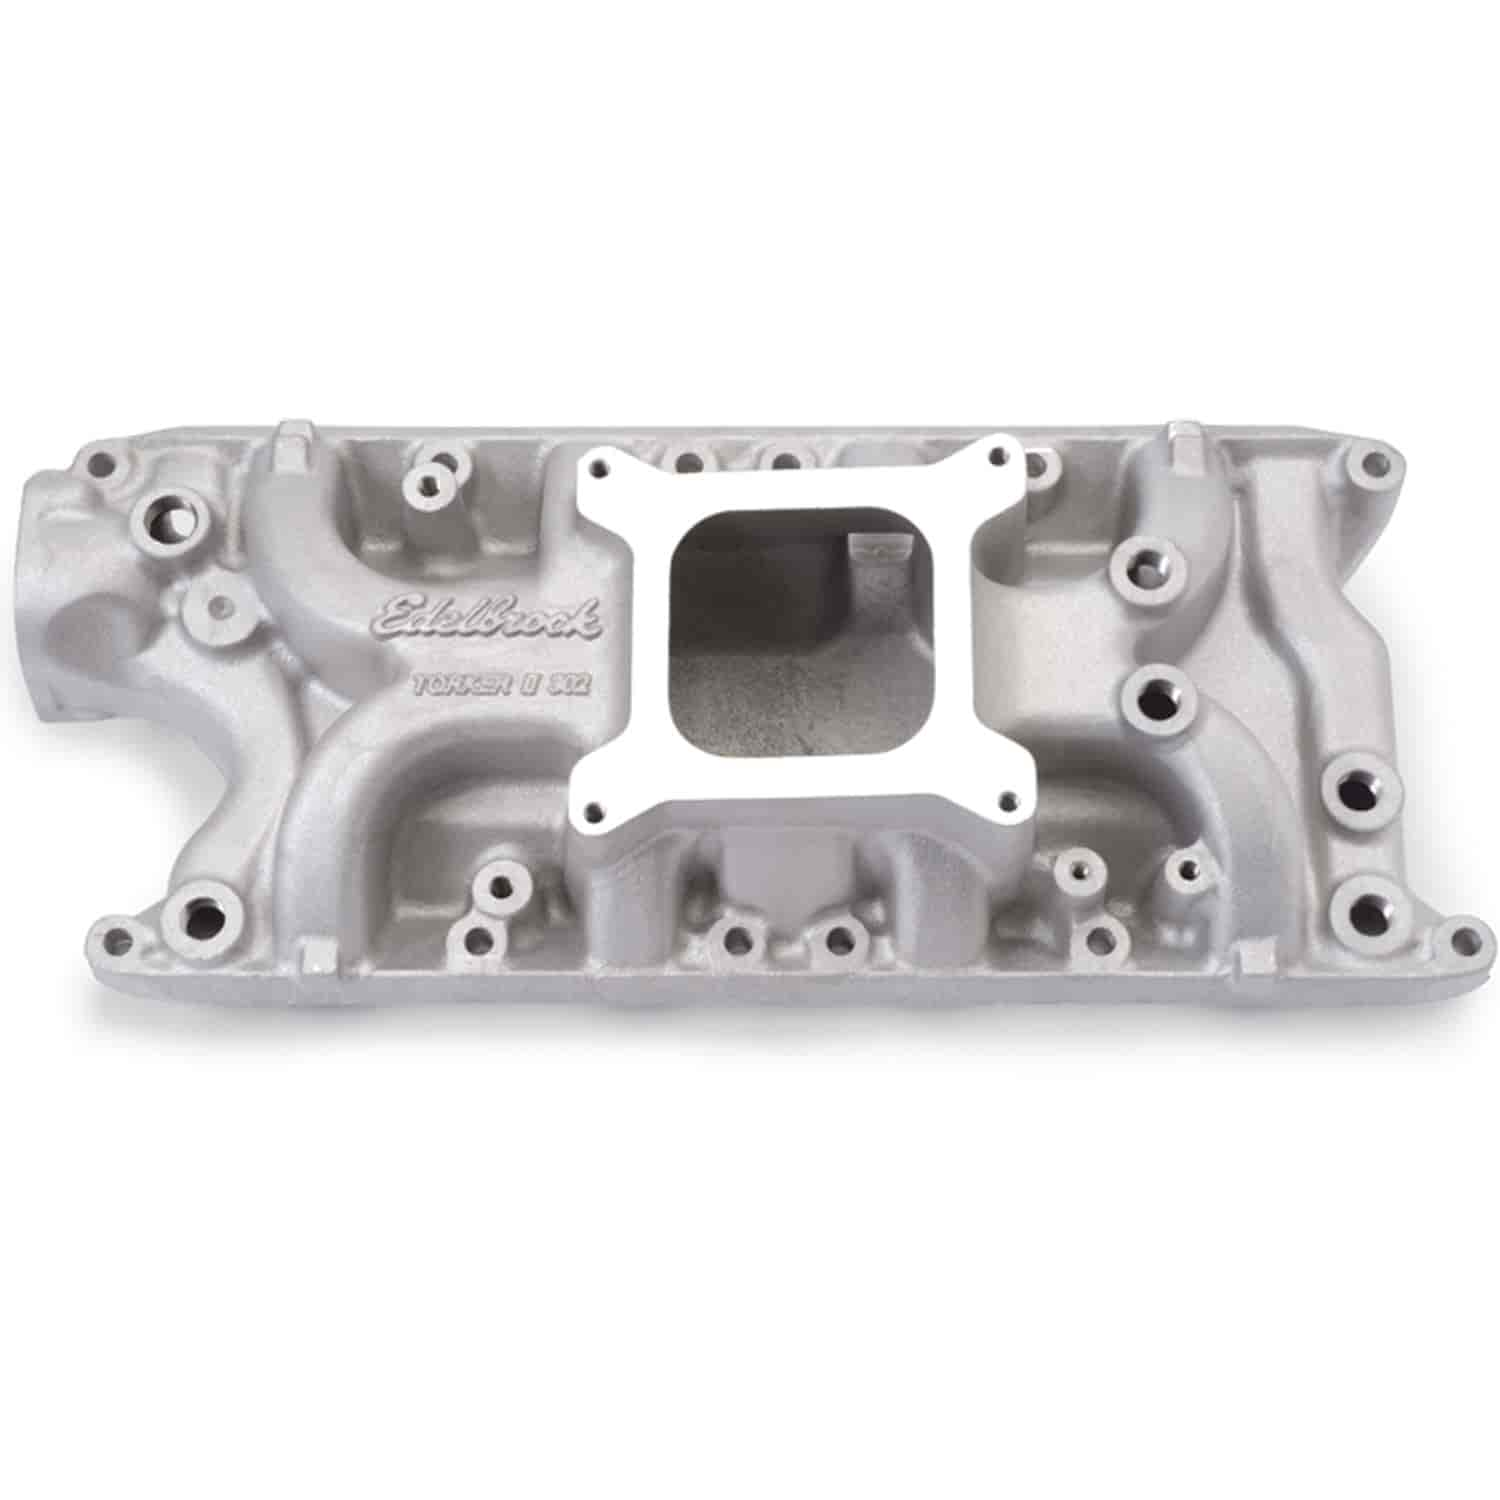 Edelbrock 5021 - Edelbrock Torker-II Manifolds and Kits for Ford